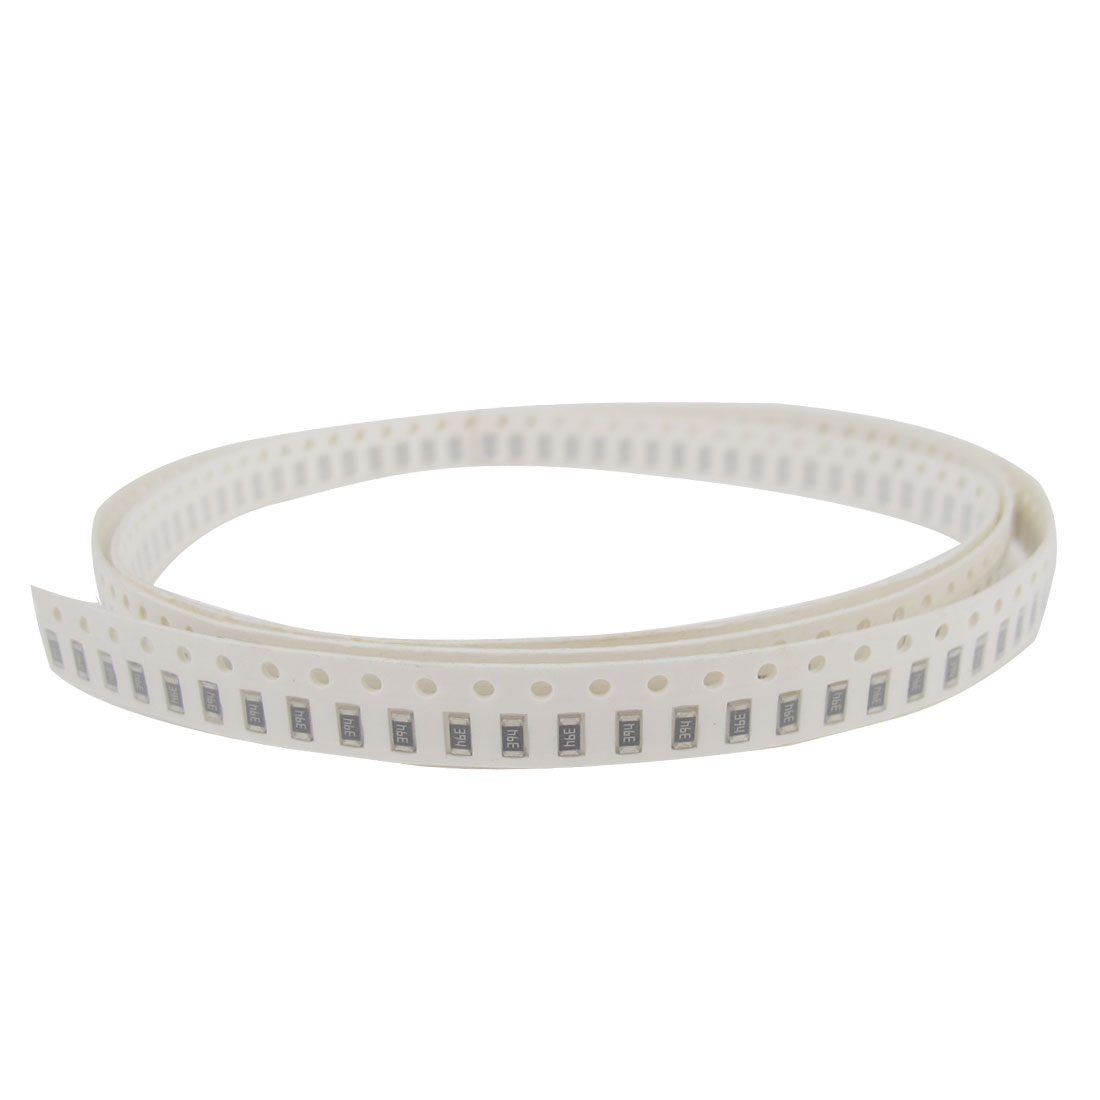 390K Ohm Resistance 1/4W Power 5% Tolerance Surface Mounting SMT SMD Chip Resistors Strip 1206 200Pcs